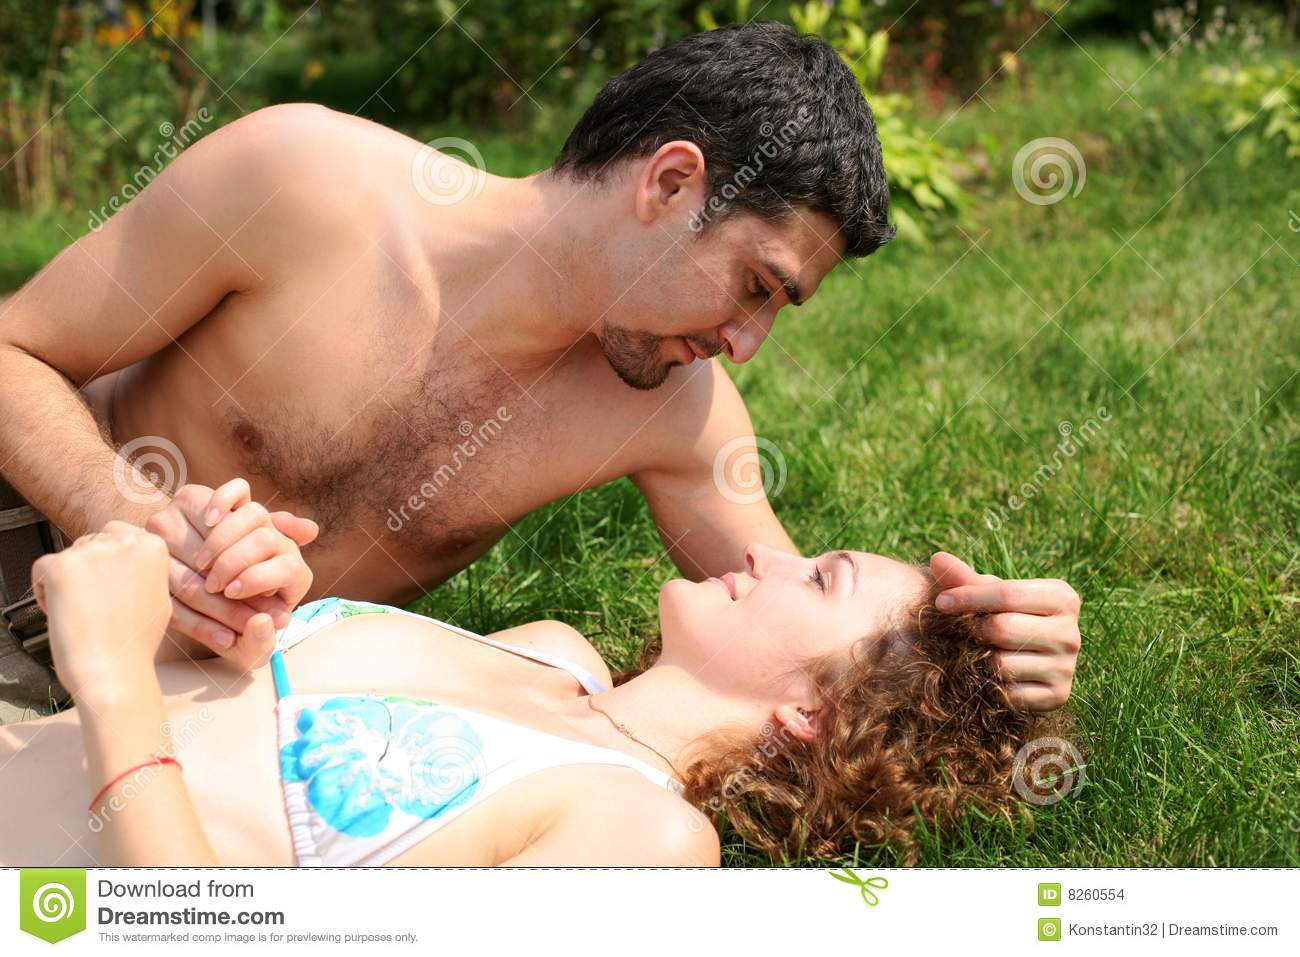 sex couple romantic naked